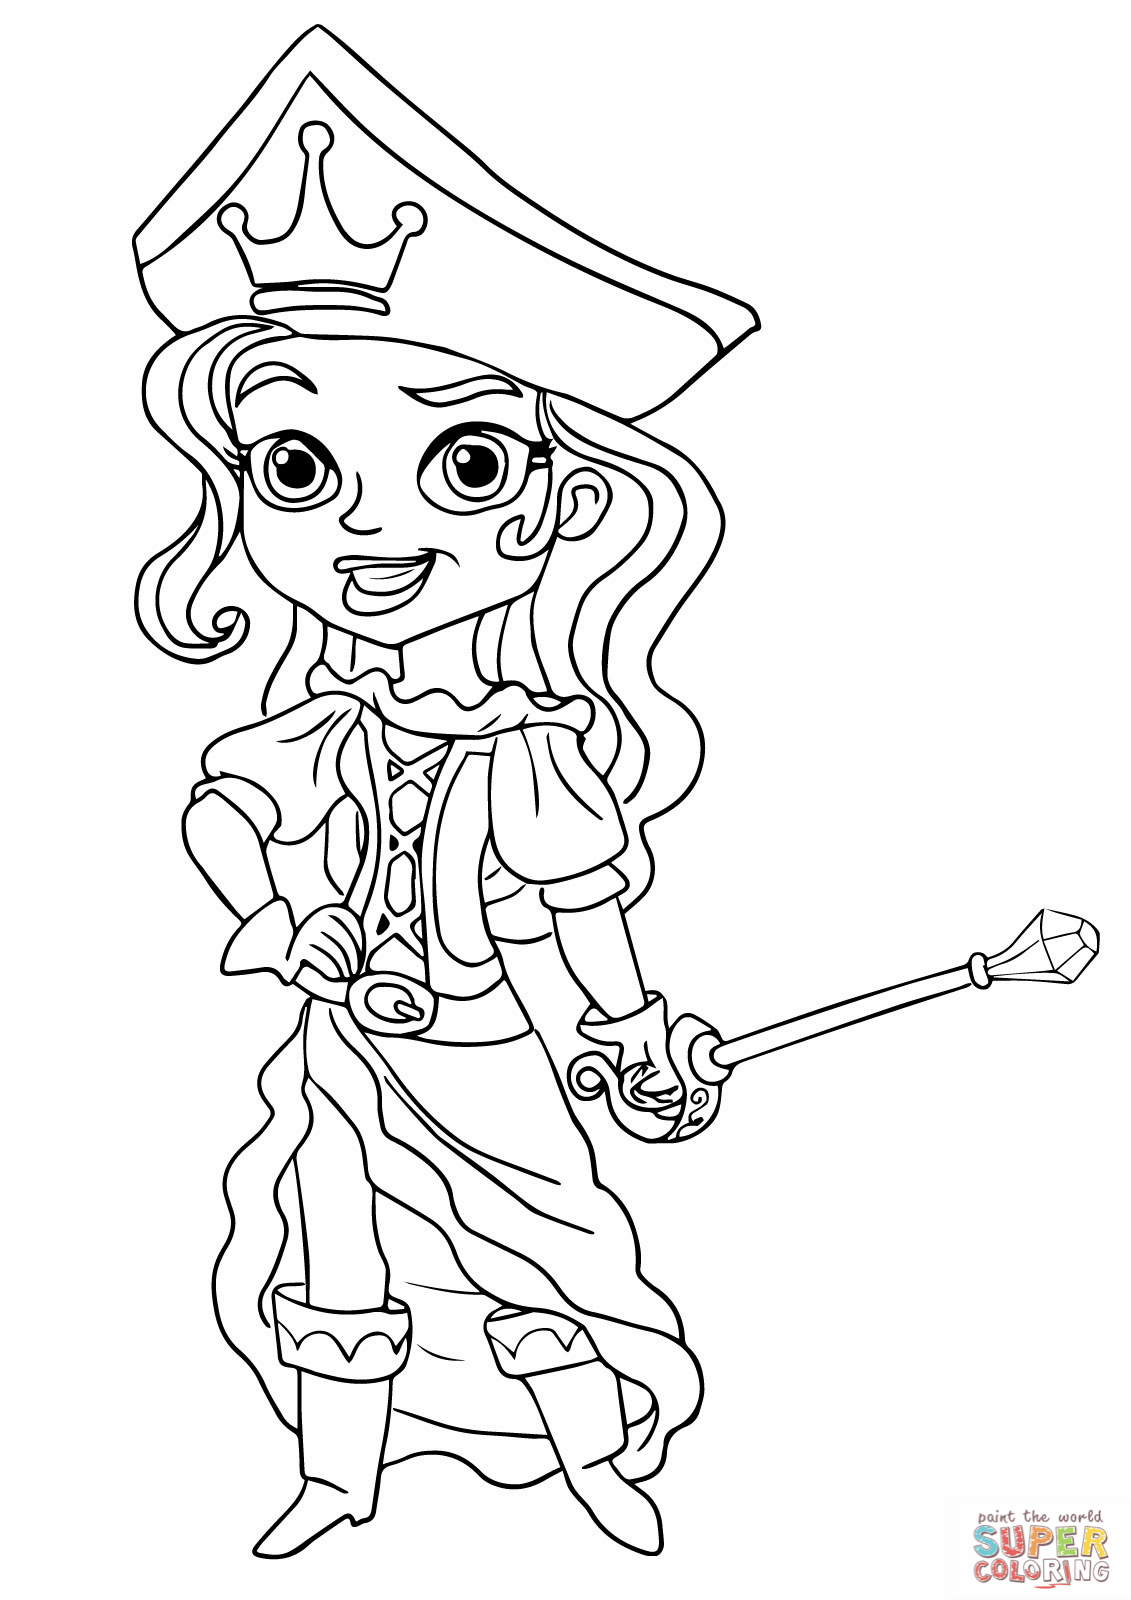 Drawn eiland neverland Coloring and pirates princess page